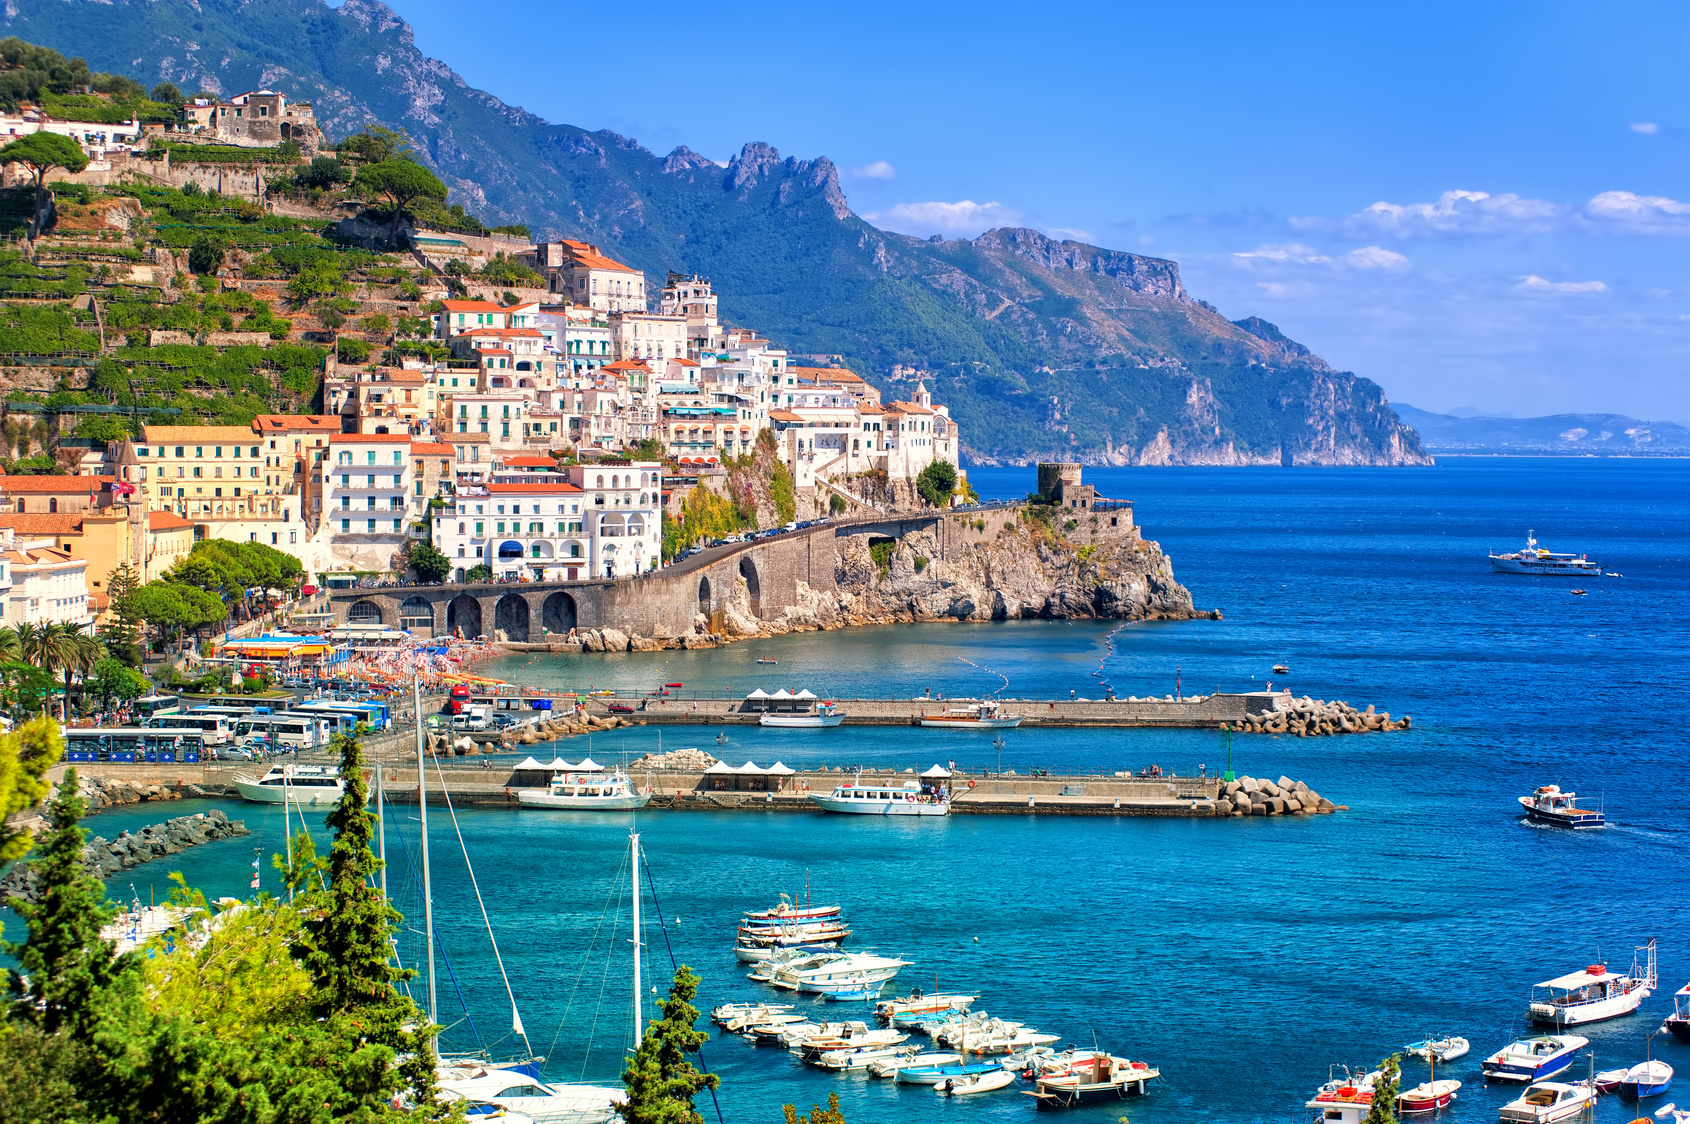 Amalfi town on a rocky coast of the Gulf of Salern, Campania, Italy